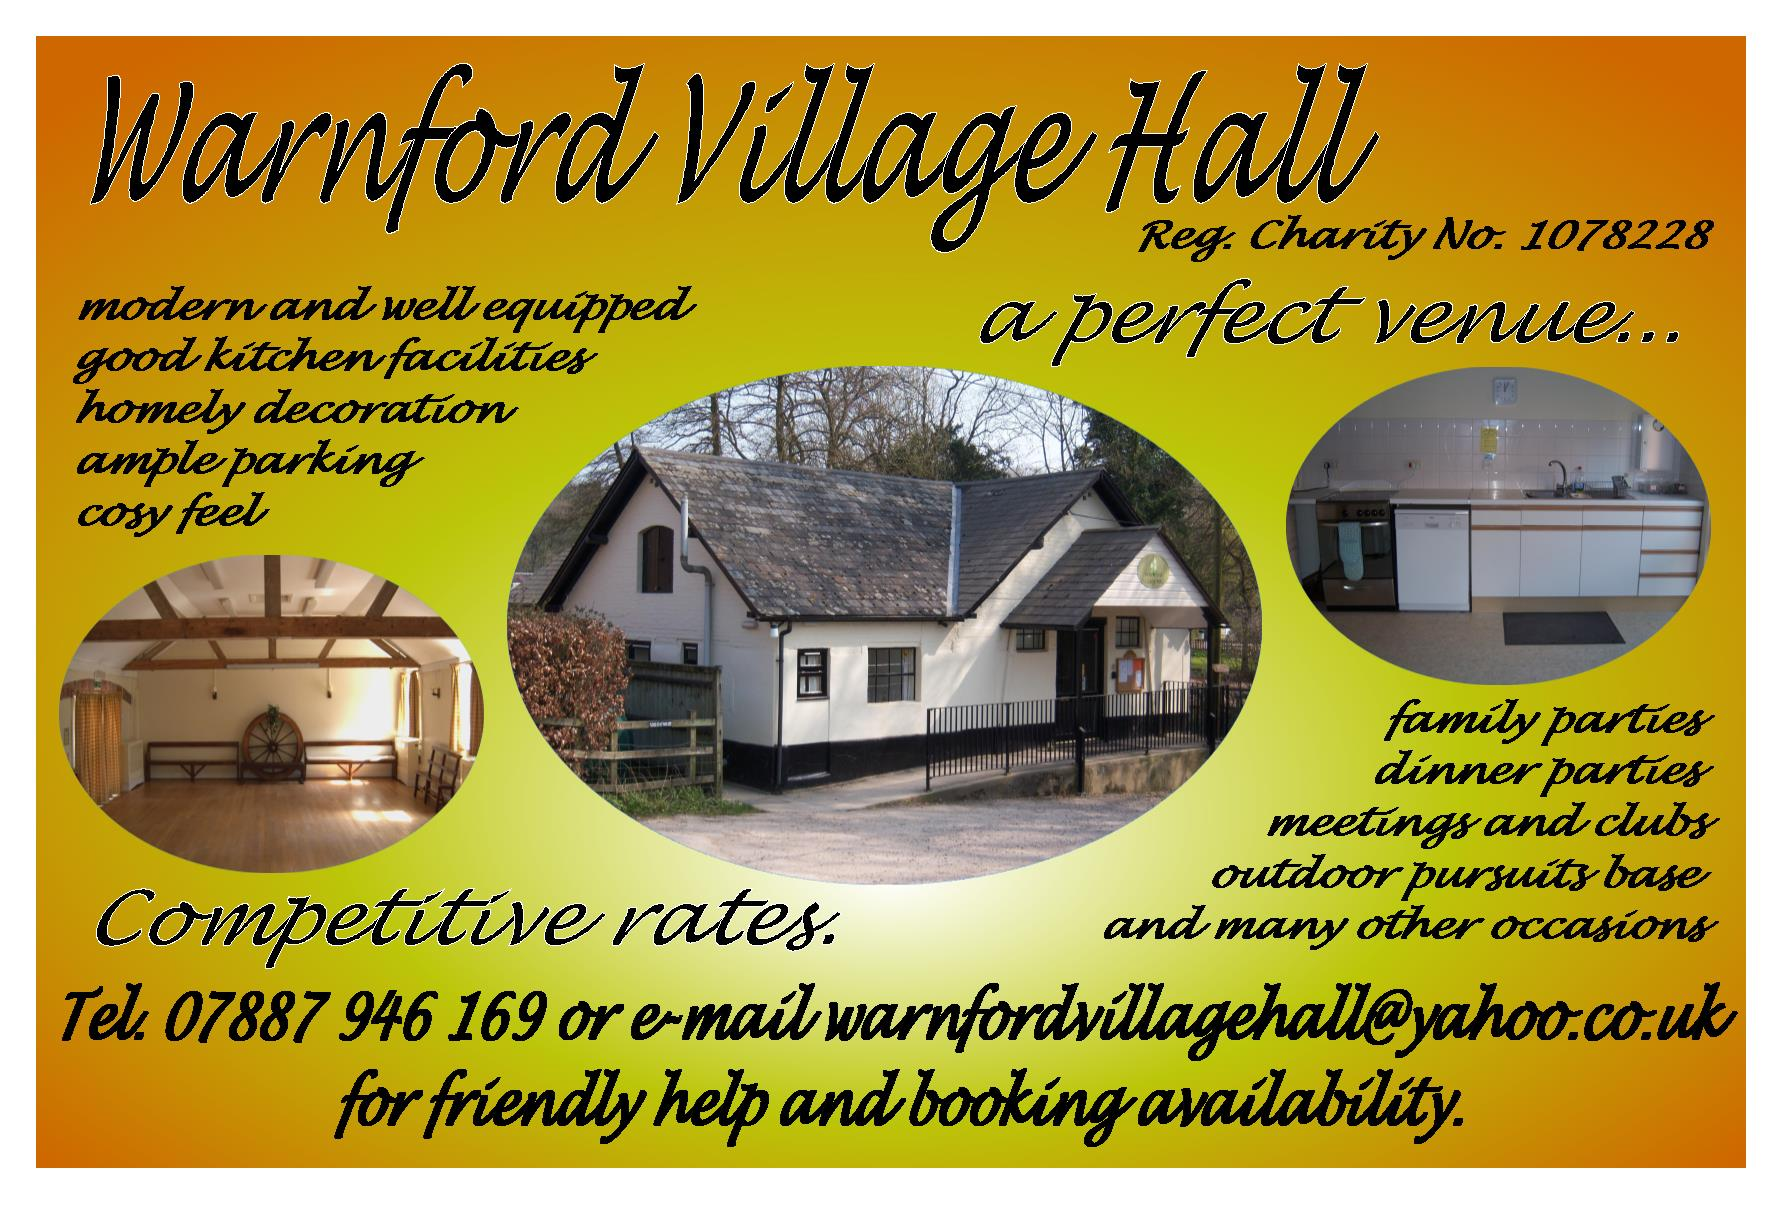 Warnford Village Village Hall